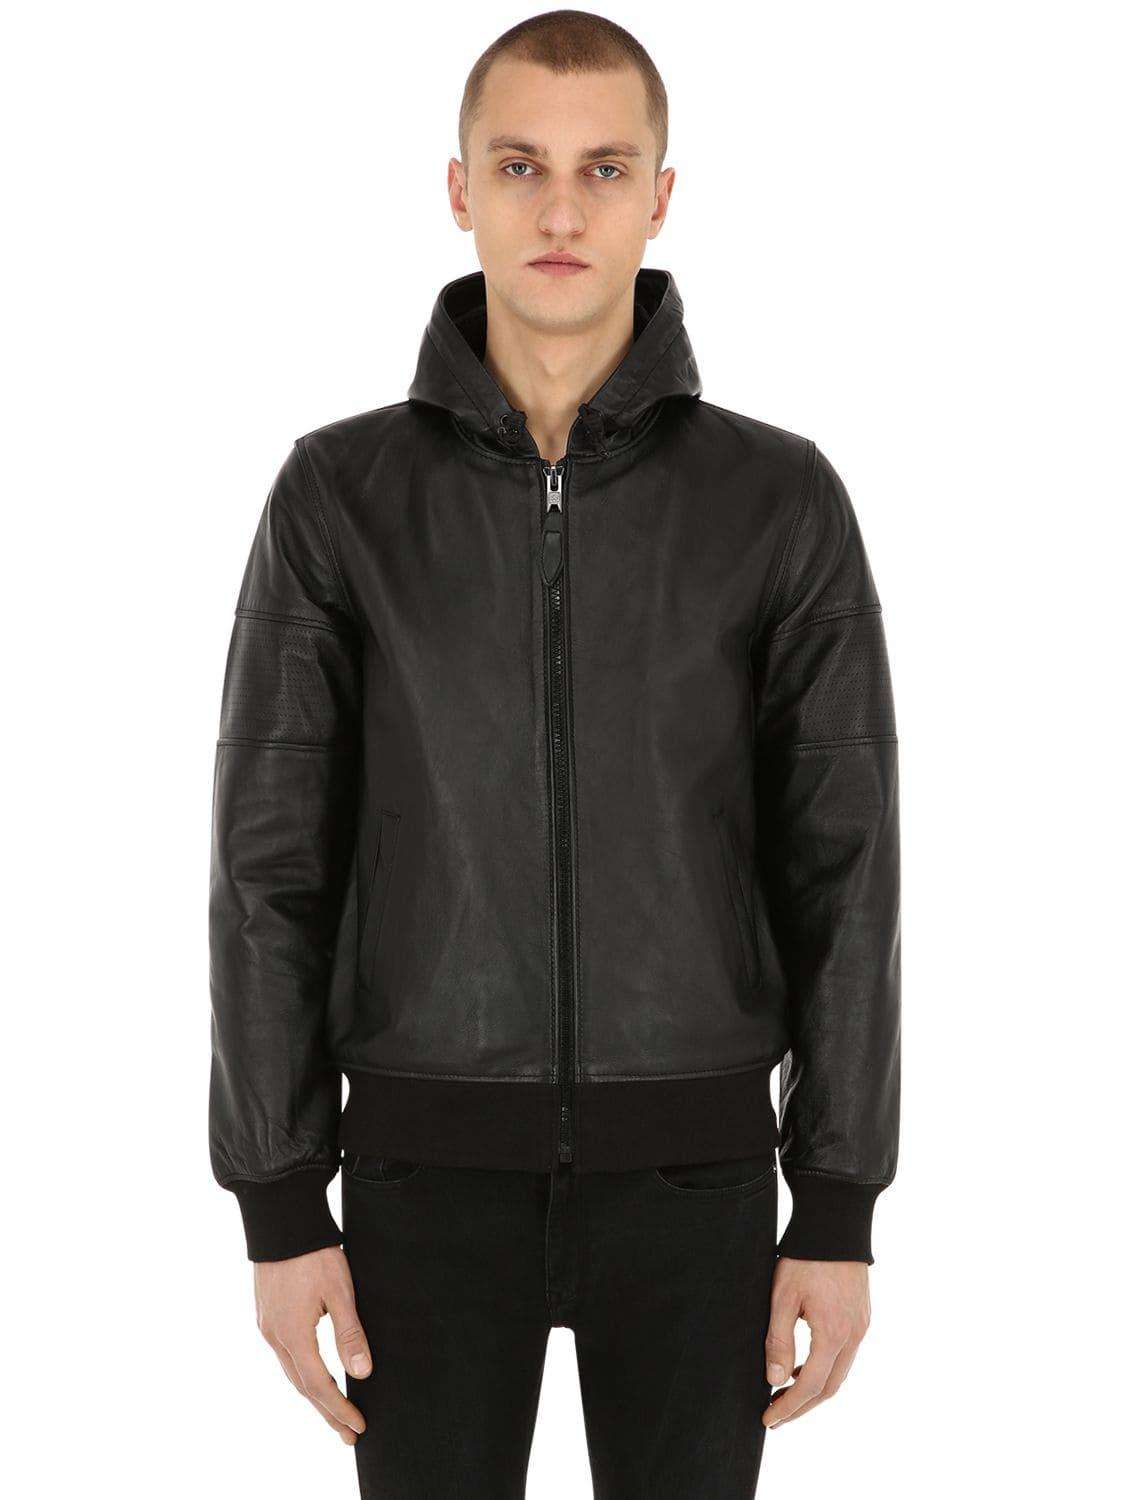 1cb5b4572526 Lyst - Schott Nyc Hooded Perforated Leather Jacket in Black for Men